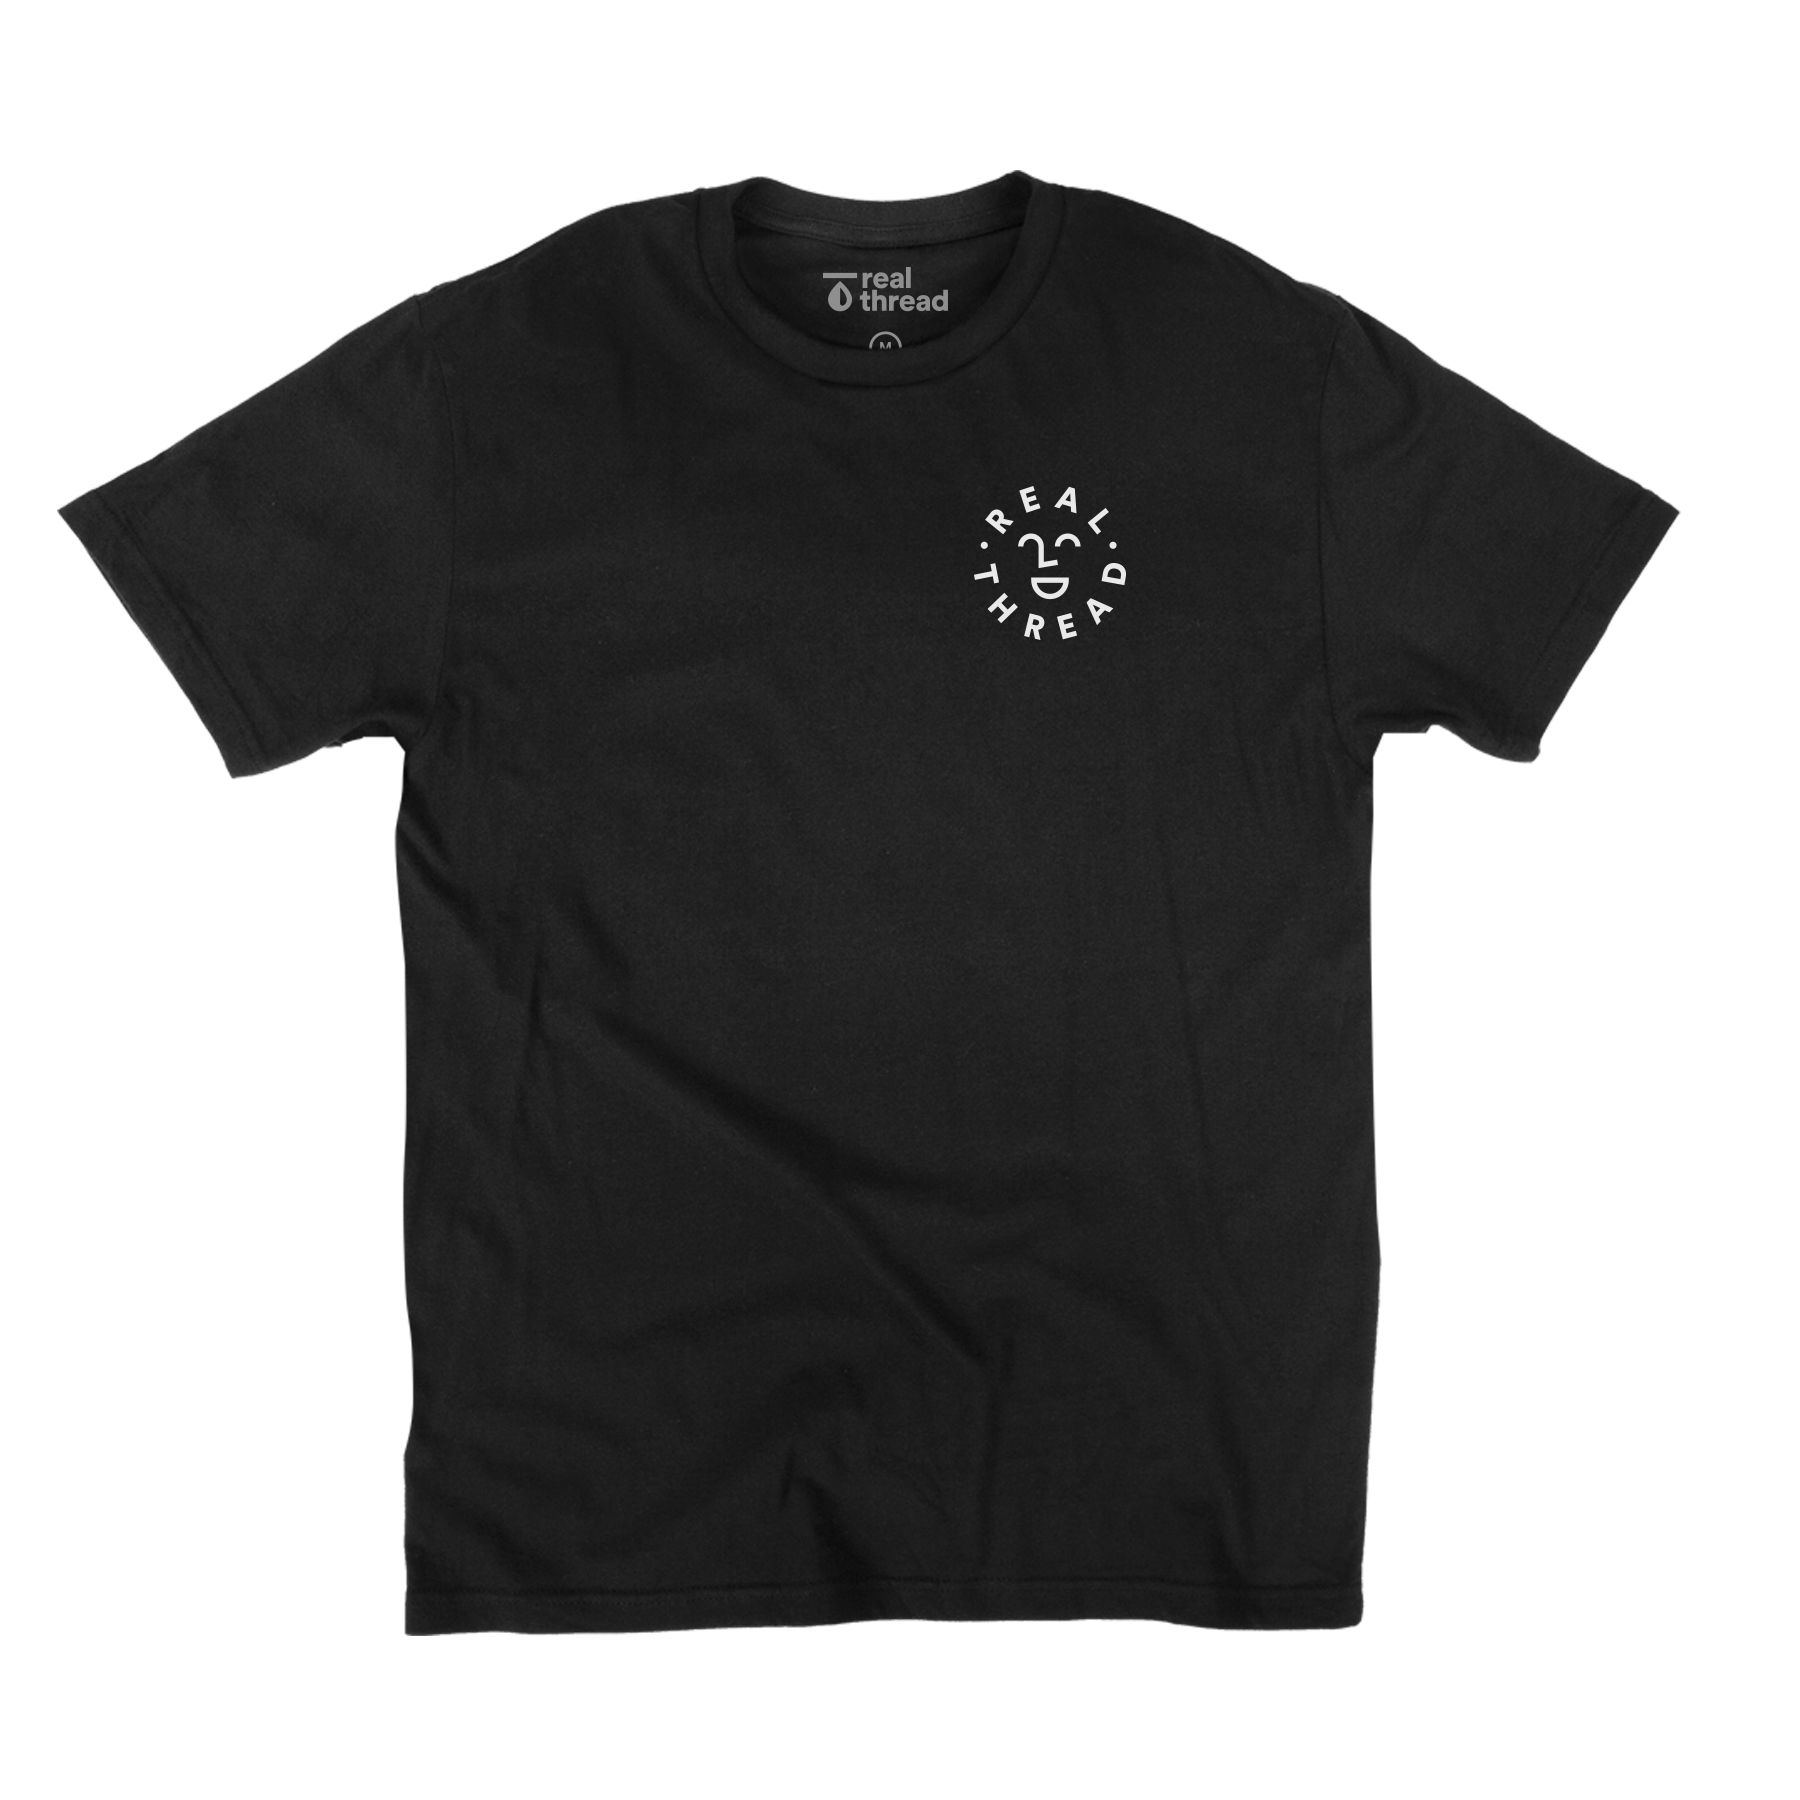 T shirt png template. Free design resources real